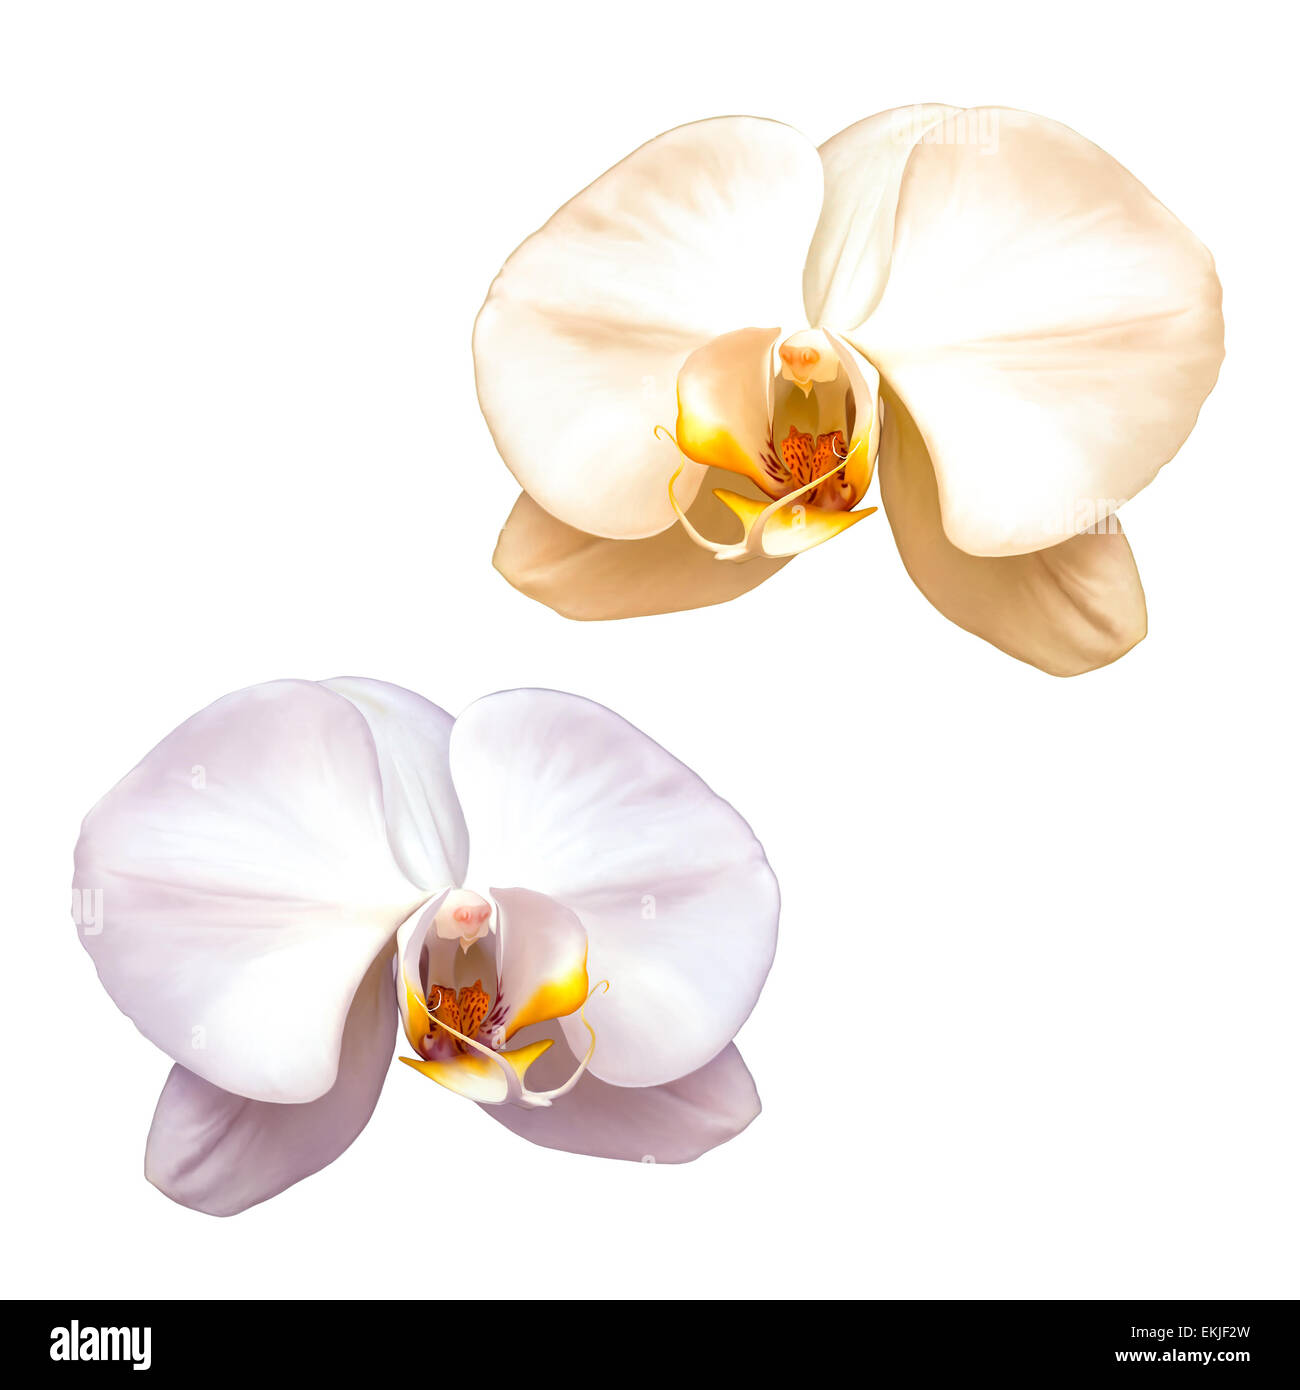 White orchid with red middle isolated on a white background, - Stock Image